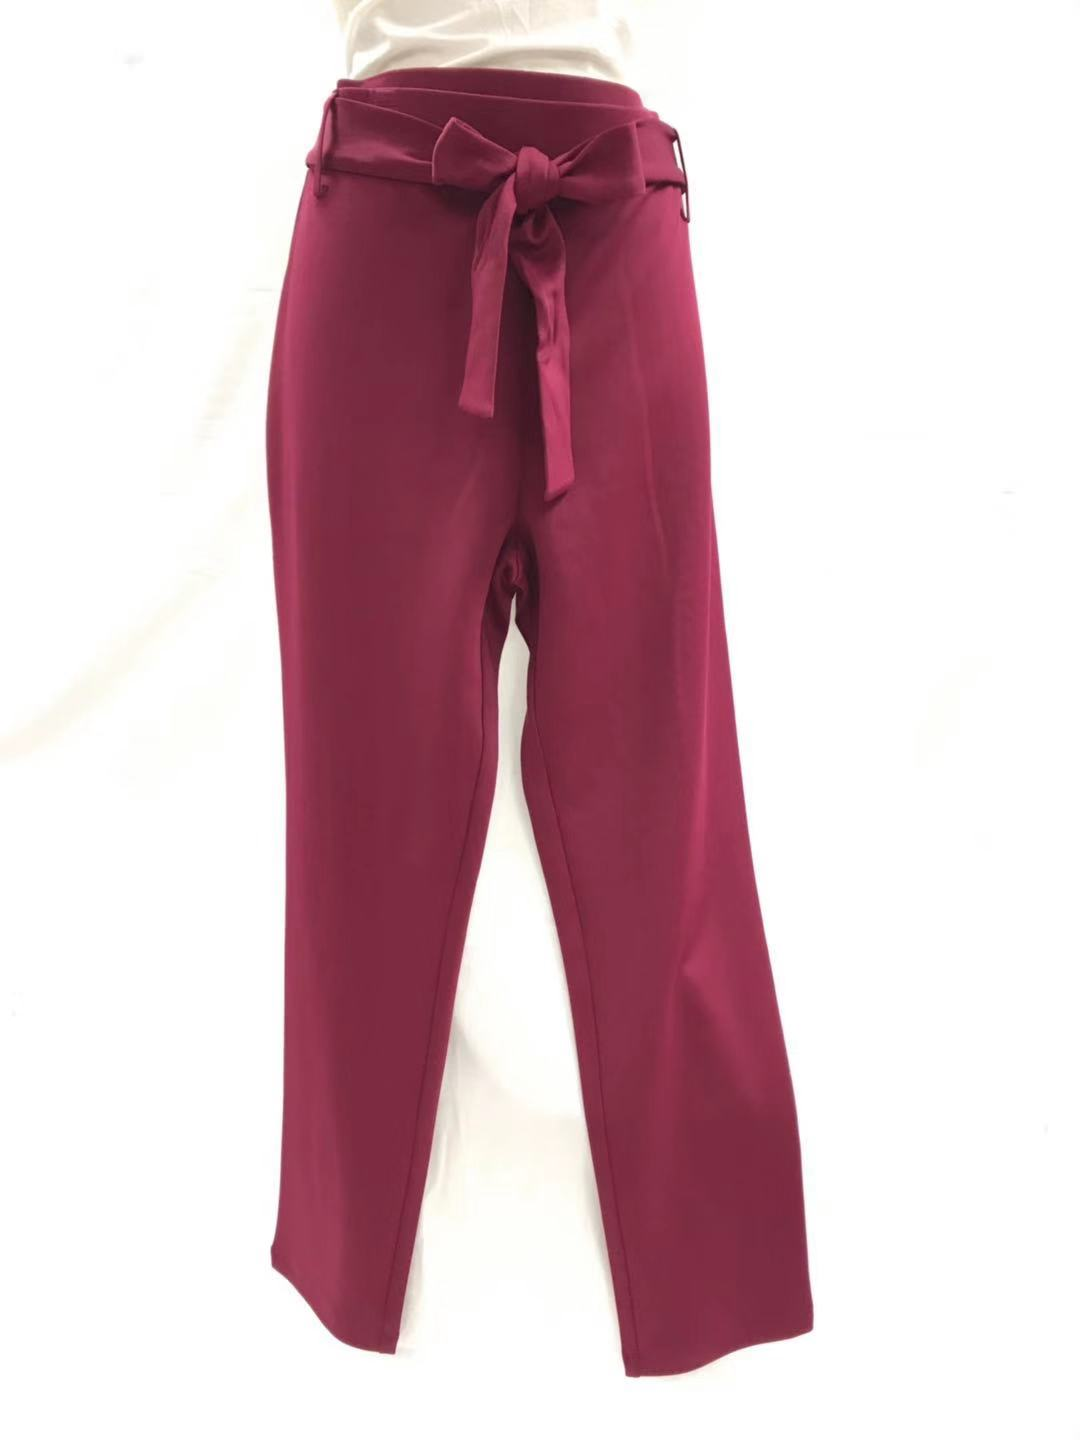 LONG PANTS LEGGING WITH TIE, **WITH SIDE SEAM ** HALF FRONT TIE